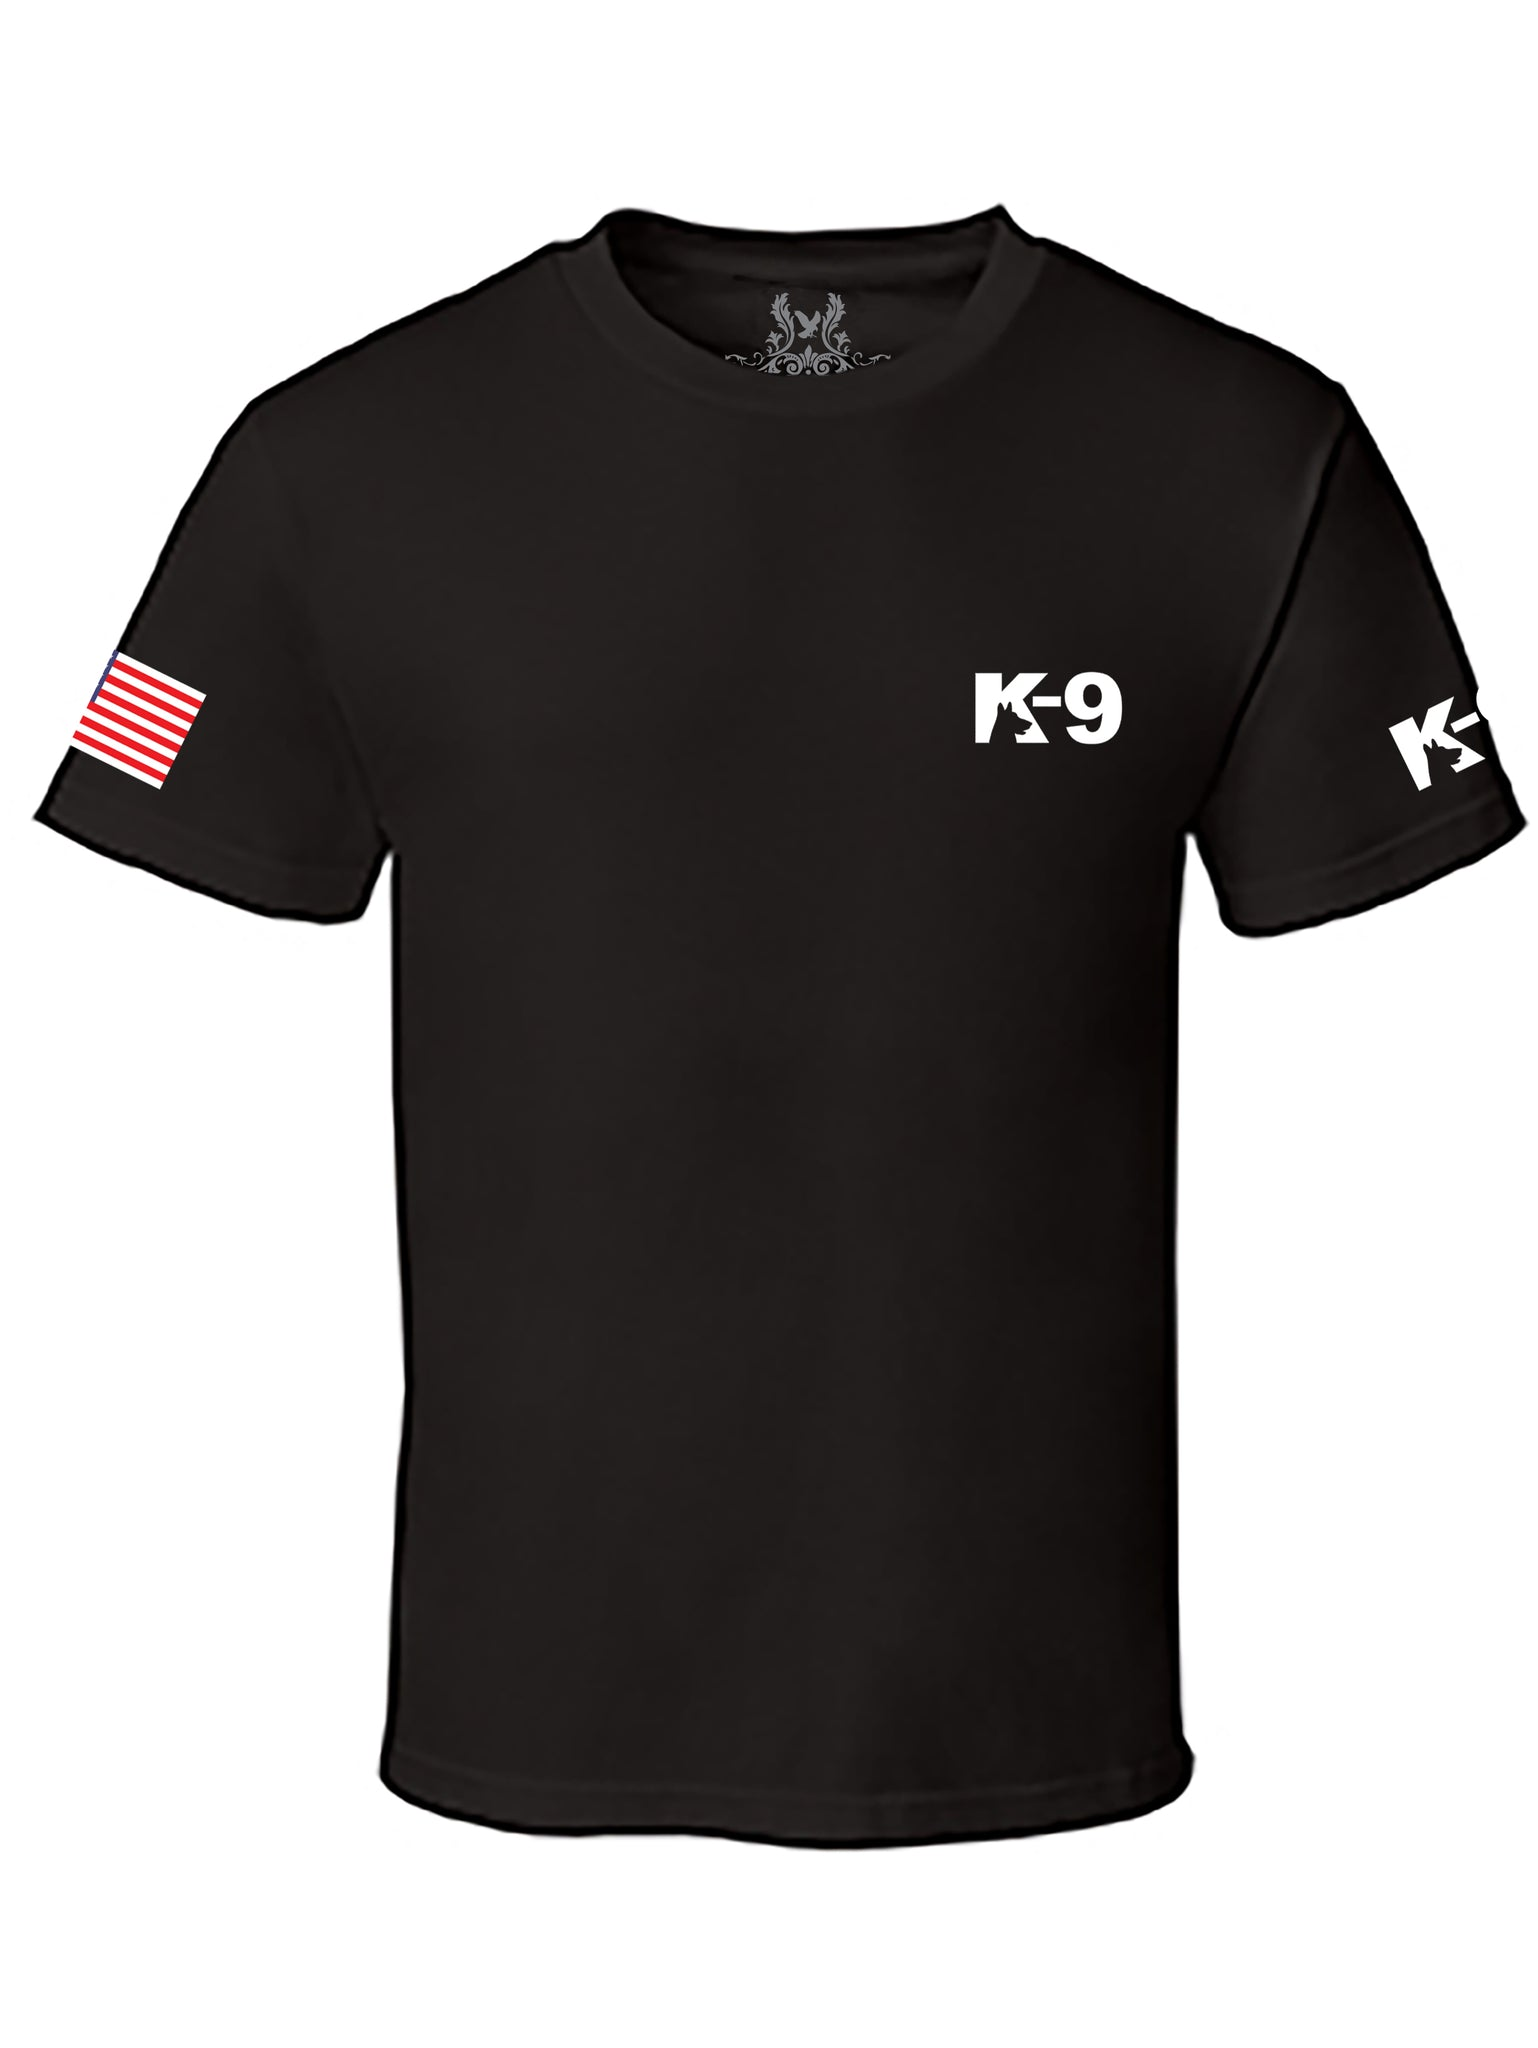 K-9 Badged T-Shirt